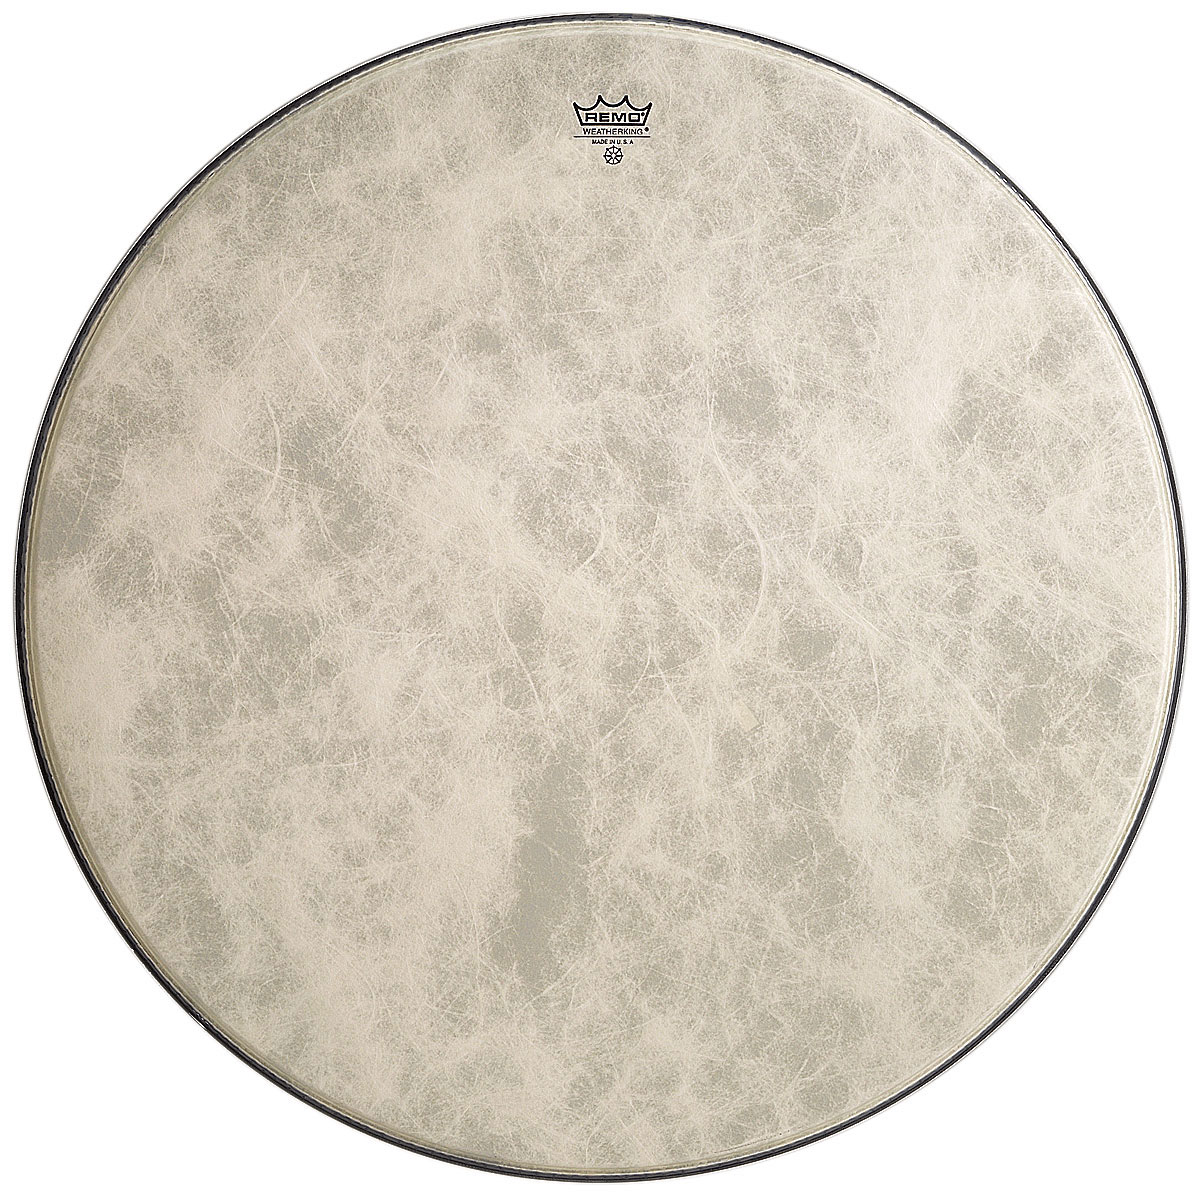 "Remo 40"" Fiberskyn Heavy Concert Bass Drum Head"